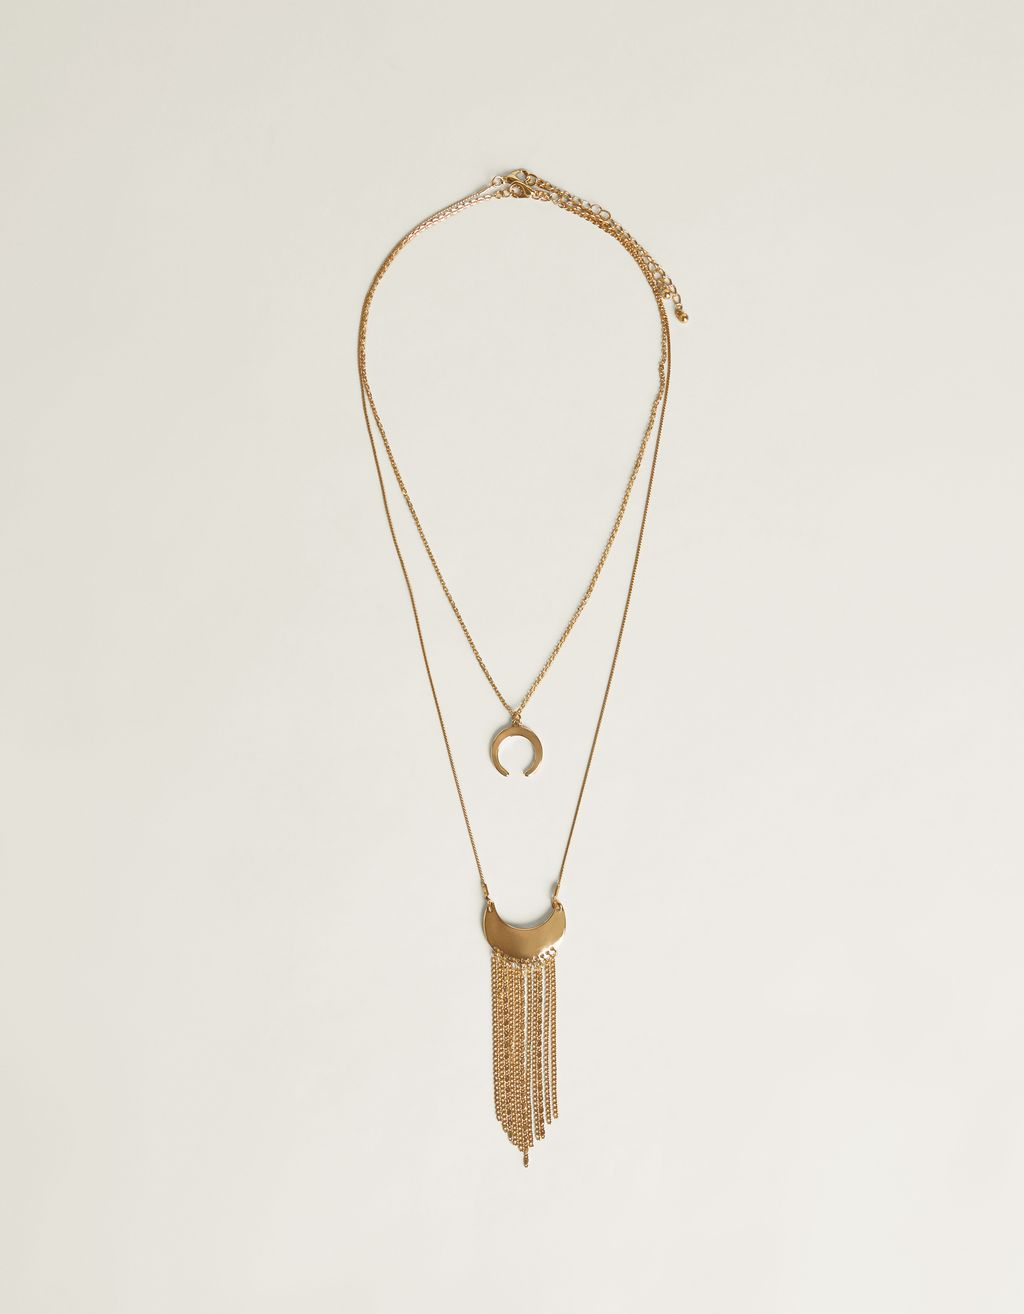 Necklace with moon and fringing